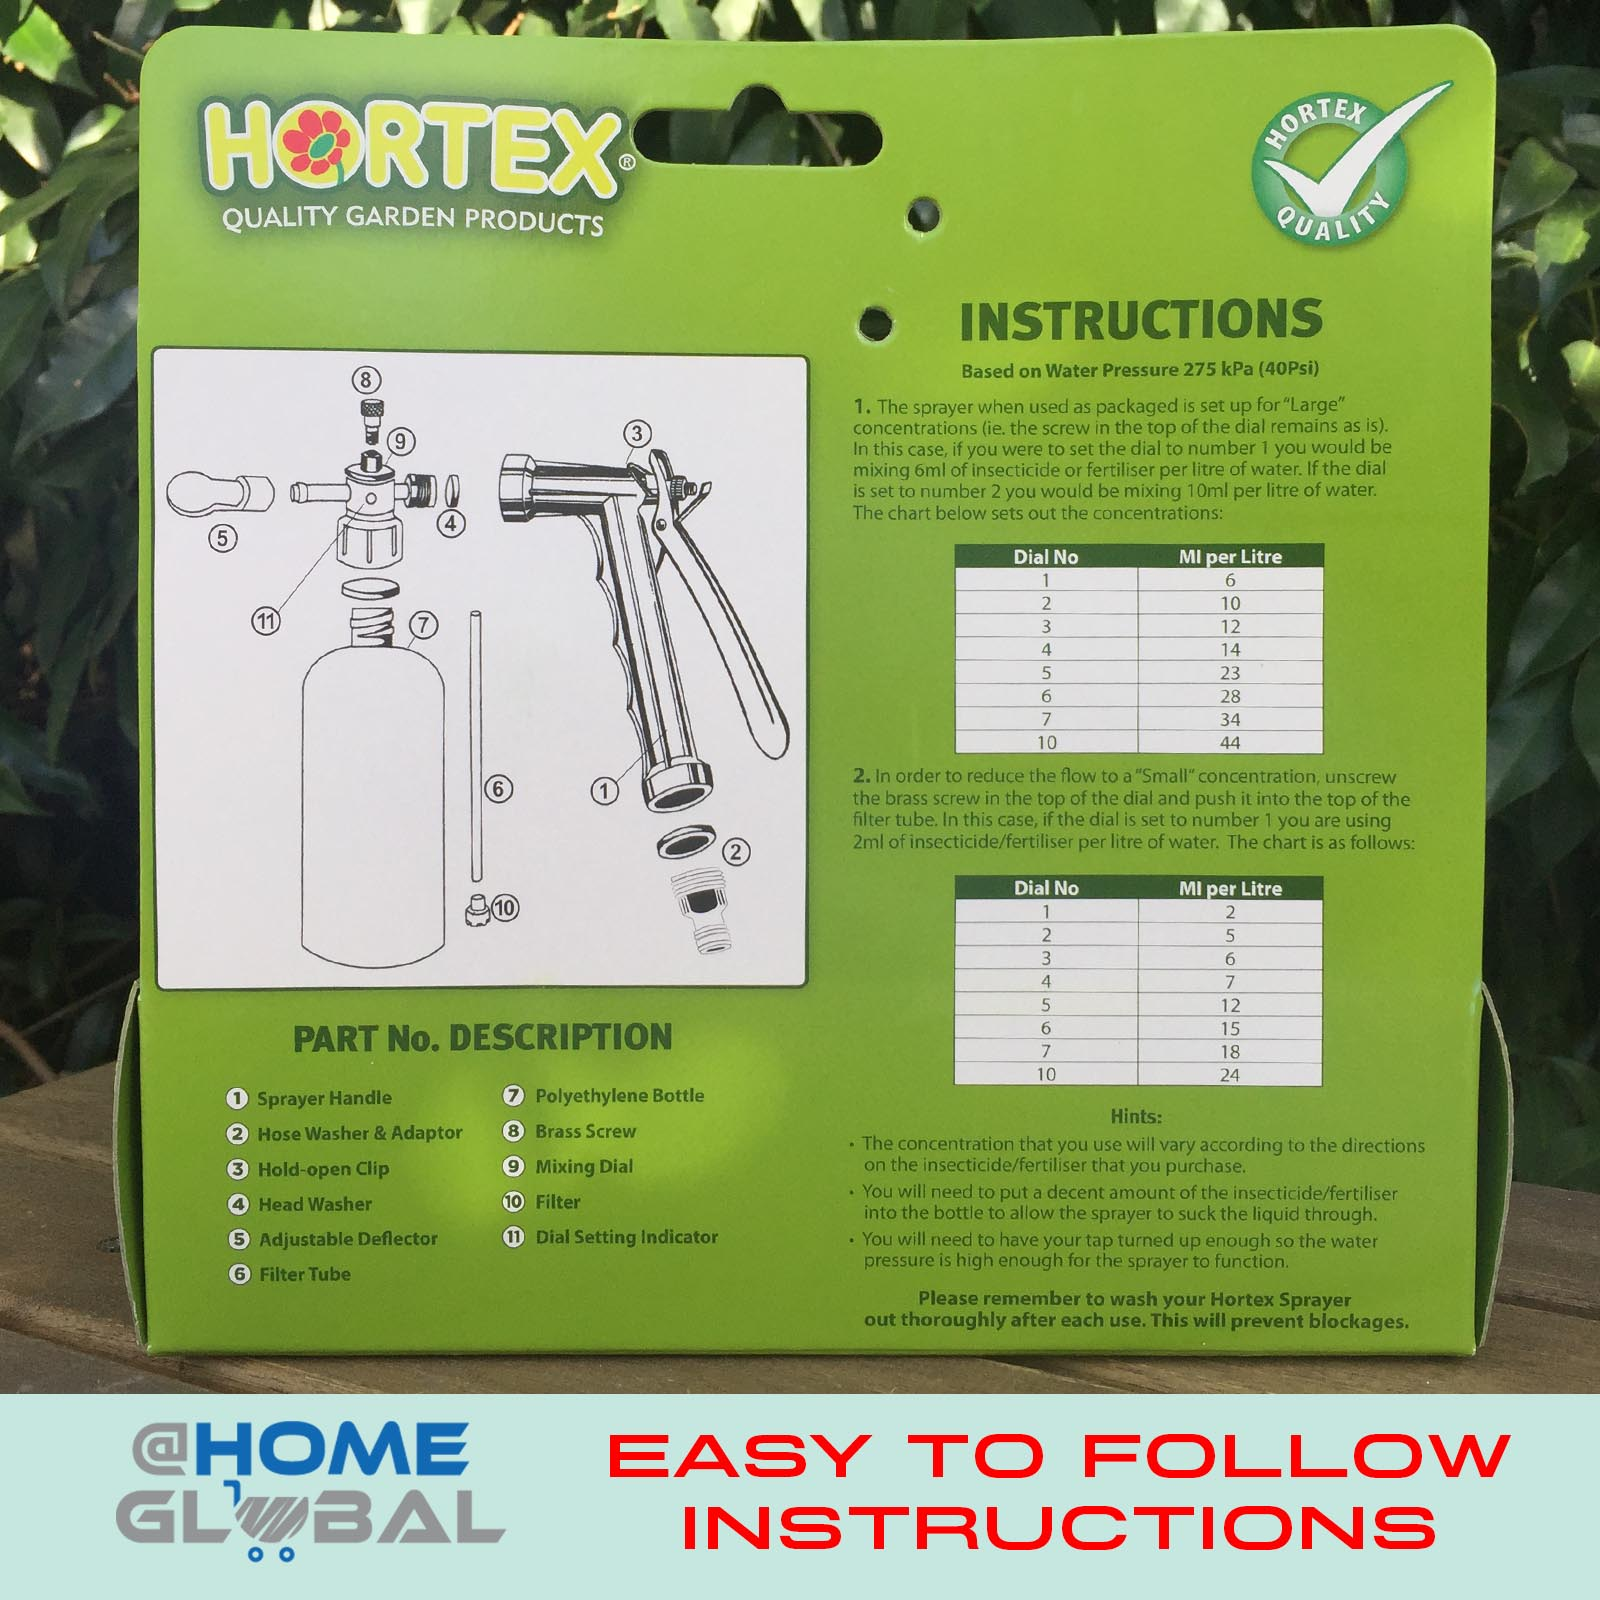 hortex hose sprayer instructions